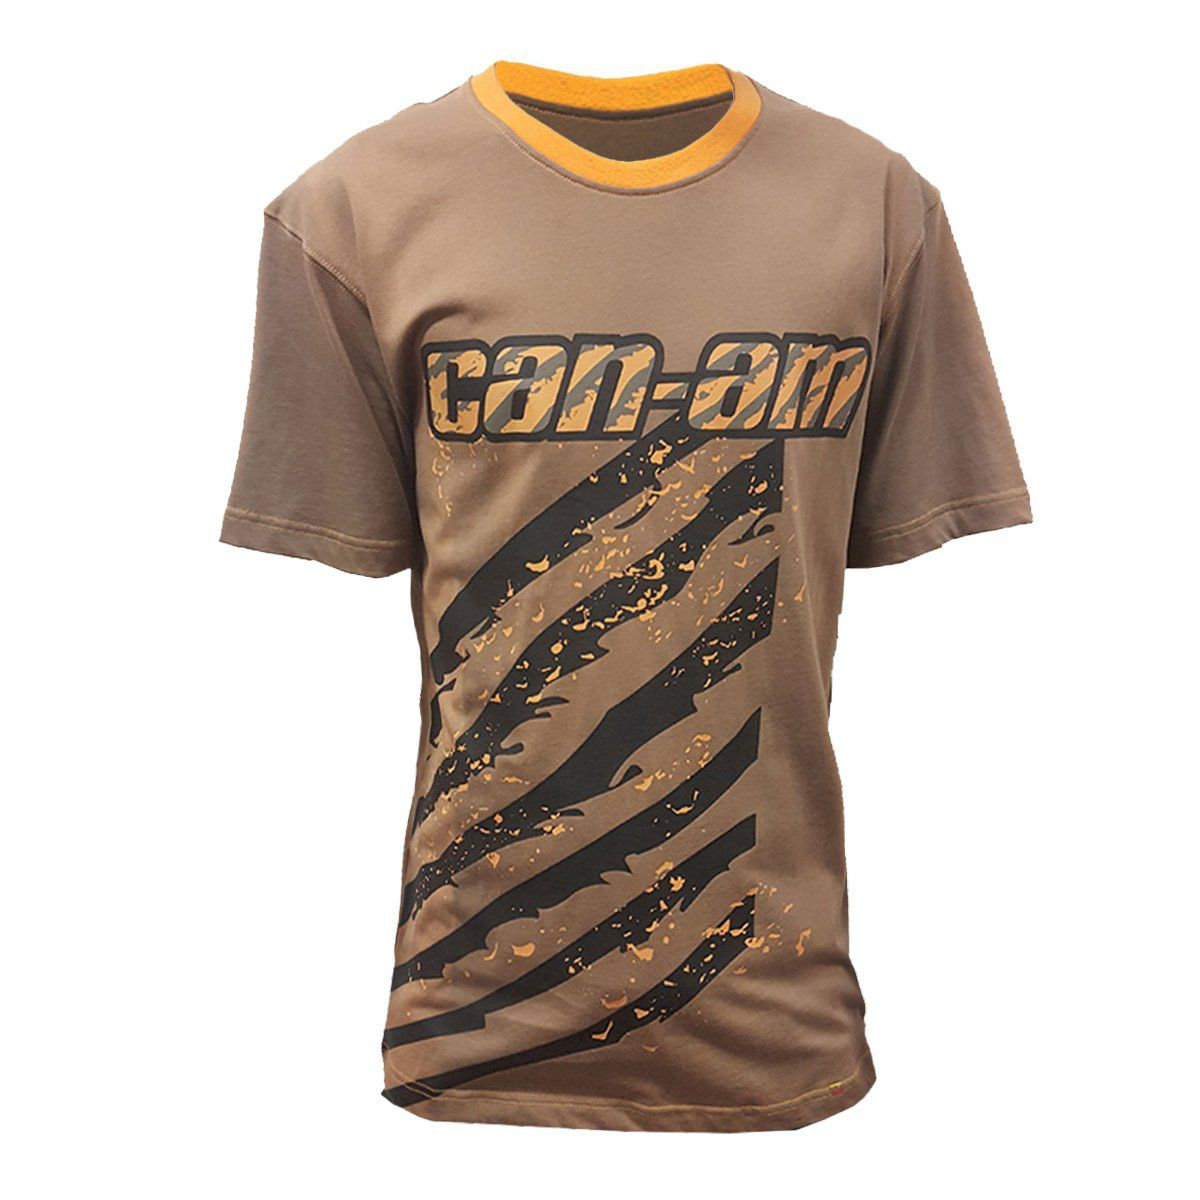 Camiseta Can-Am Masculina Trilha Marrom